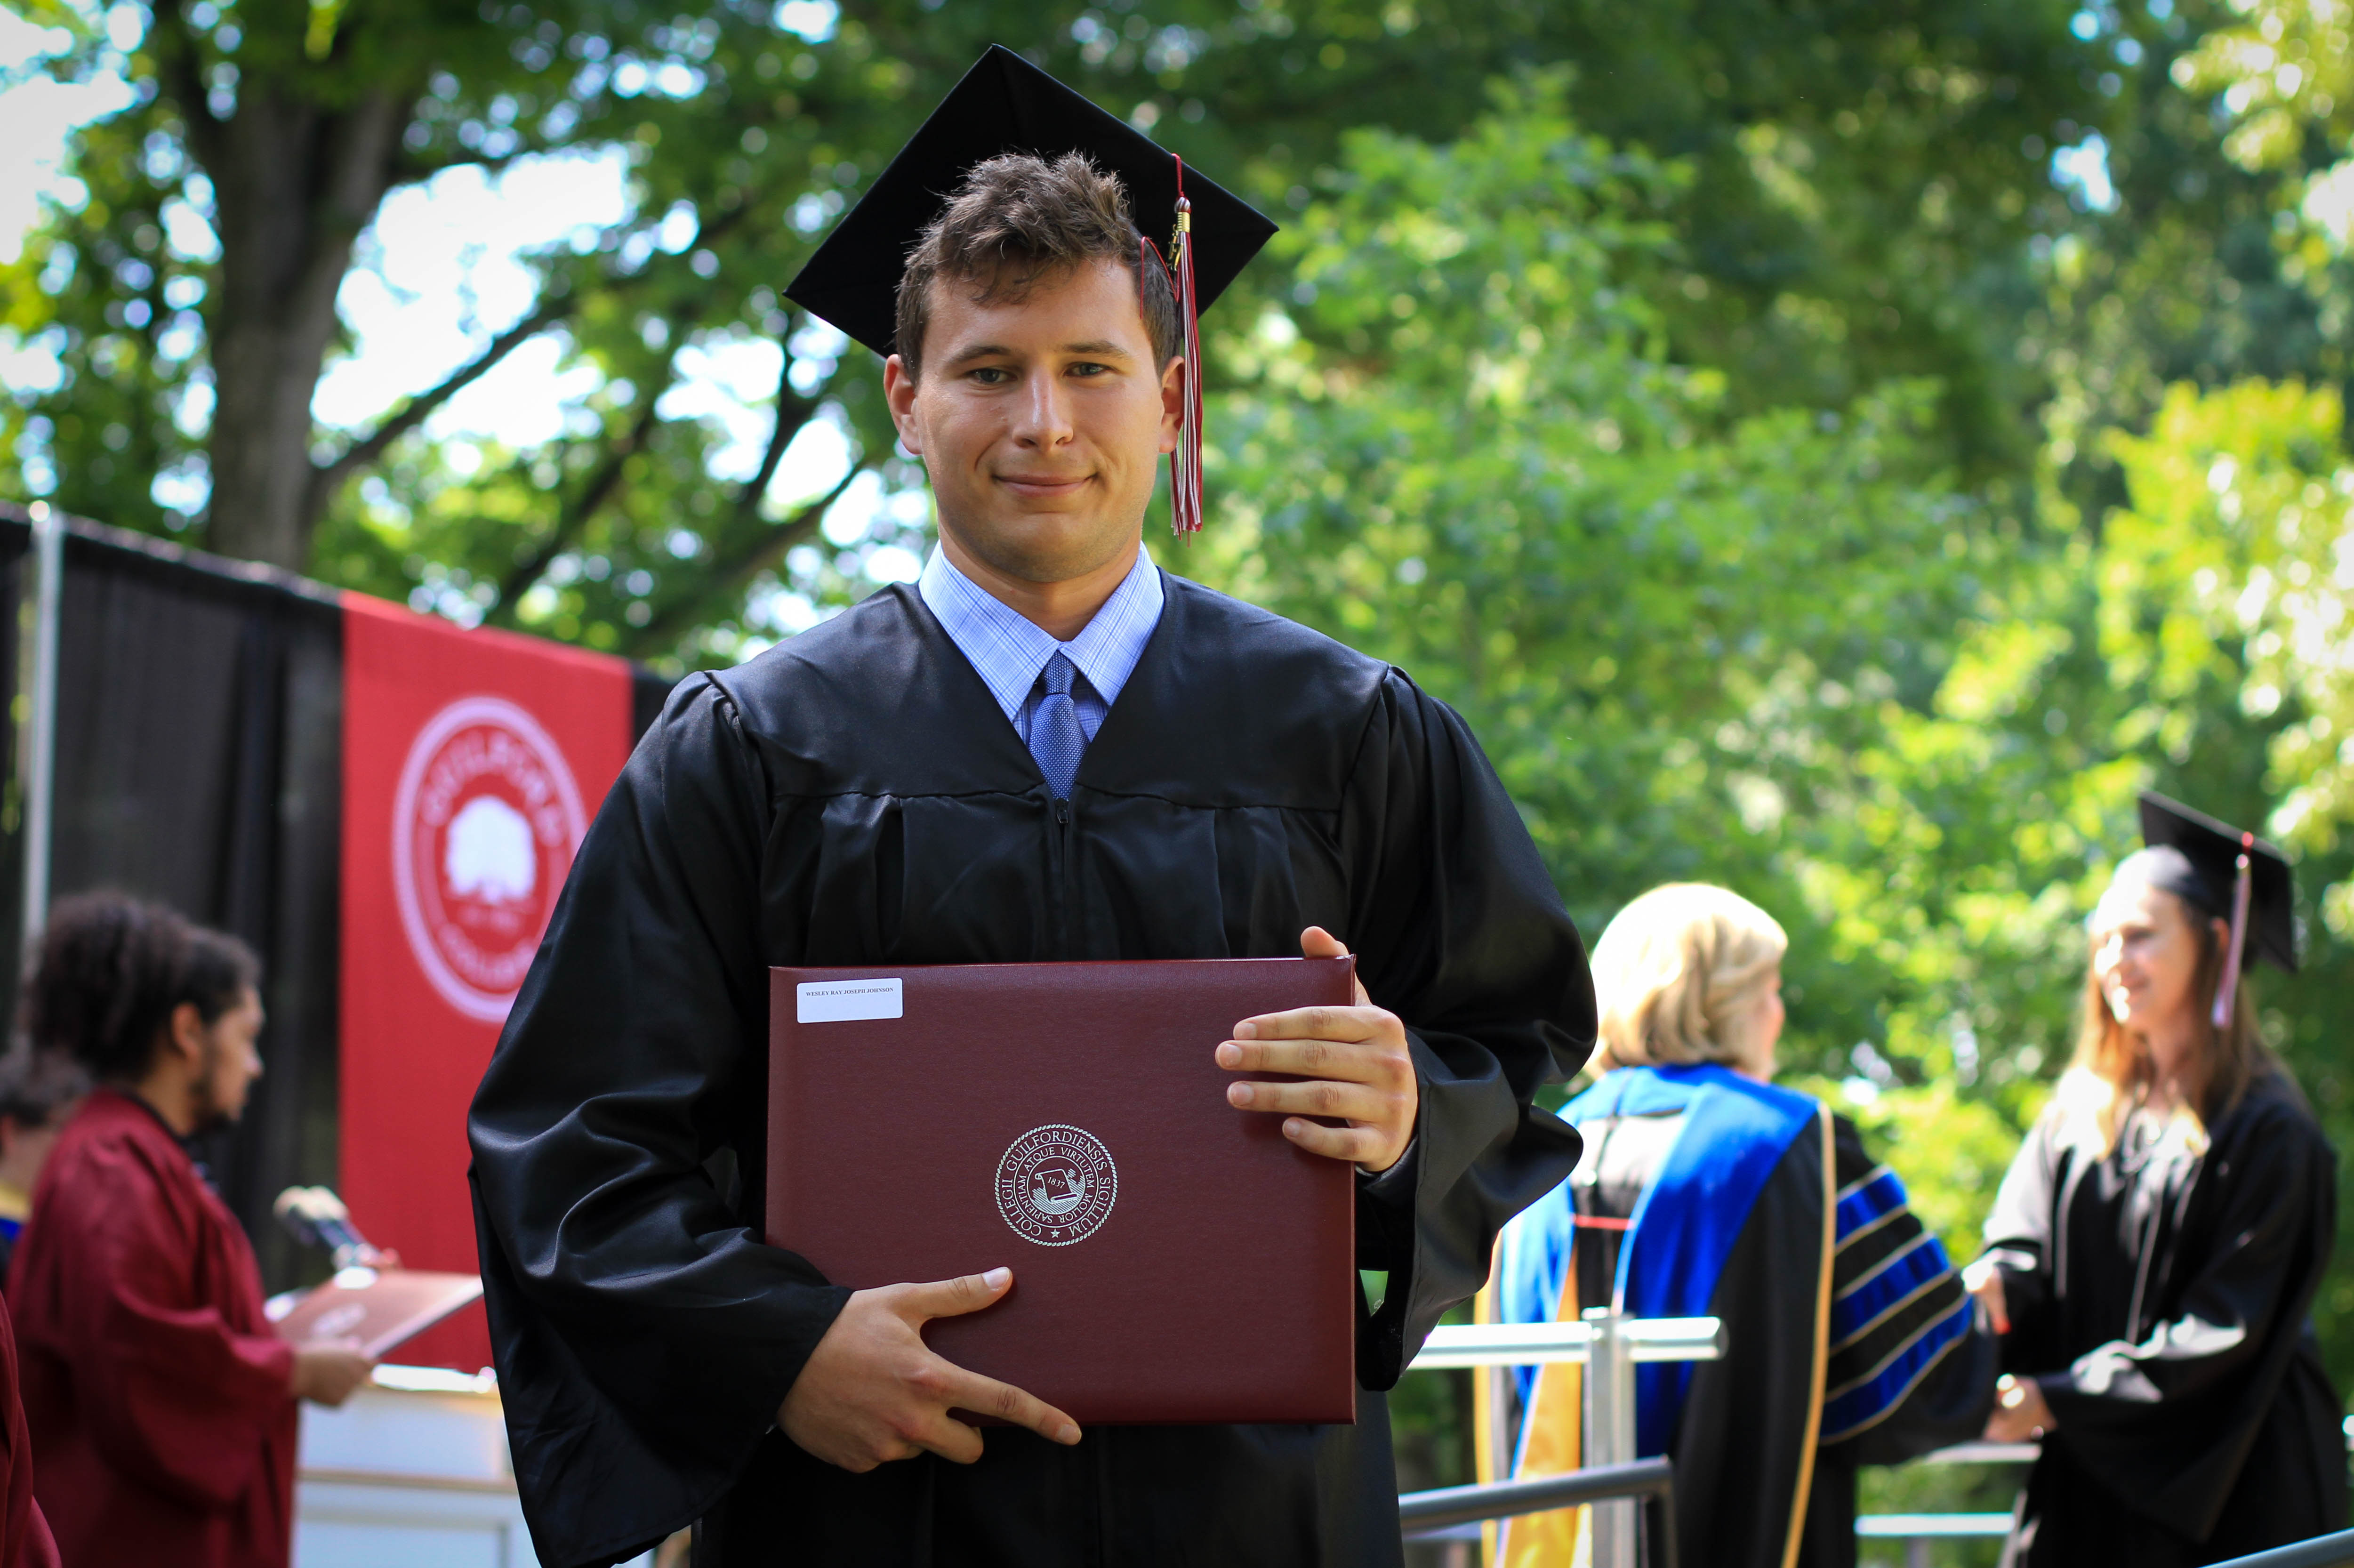 A graduate poses for the camera after receiving his diploma.